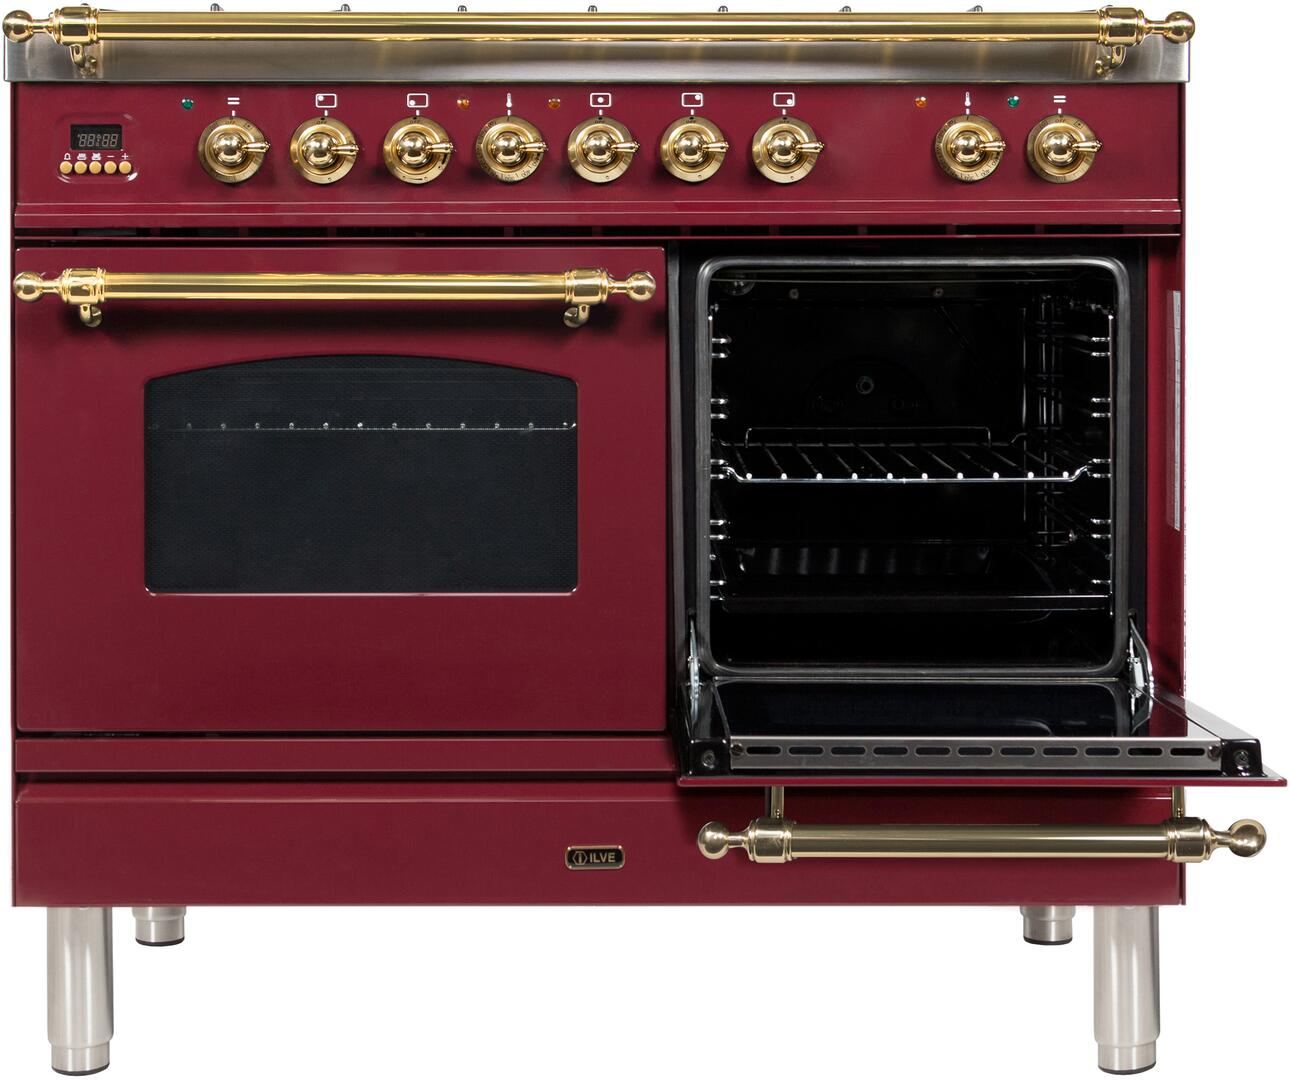 Ilve Nostalgie UPDN100FDMPRB Freestanding Dual Fuel Range Red, UPDN100FDMPRB Secondary Door Opened